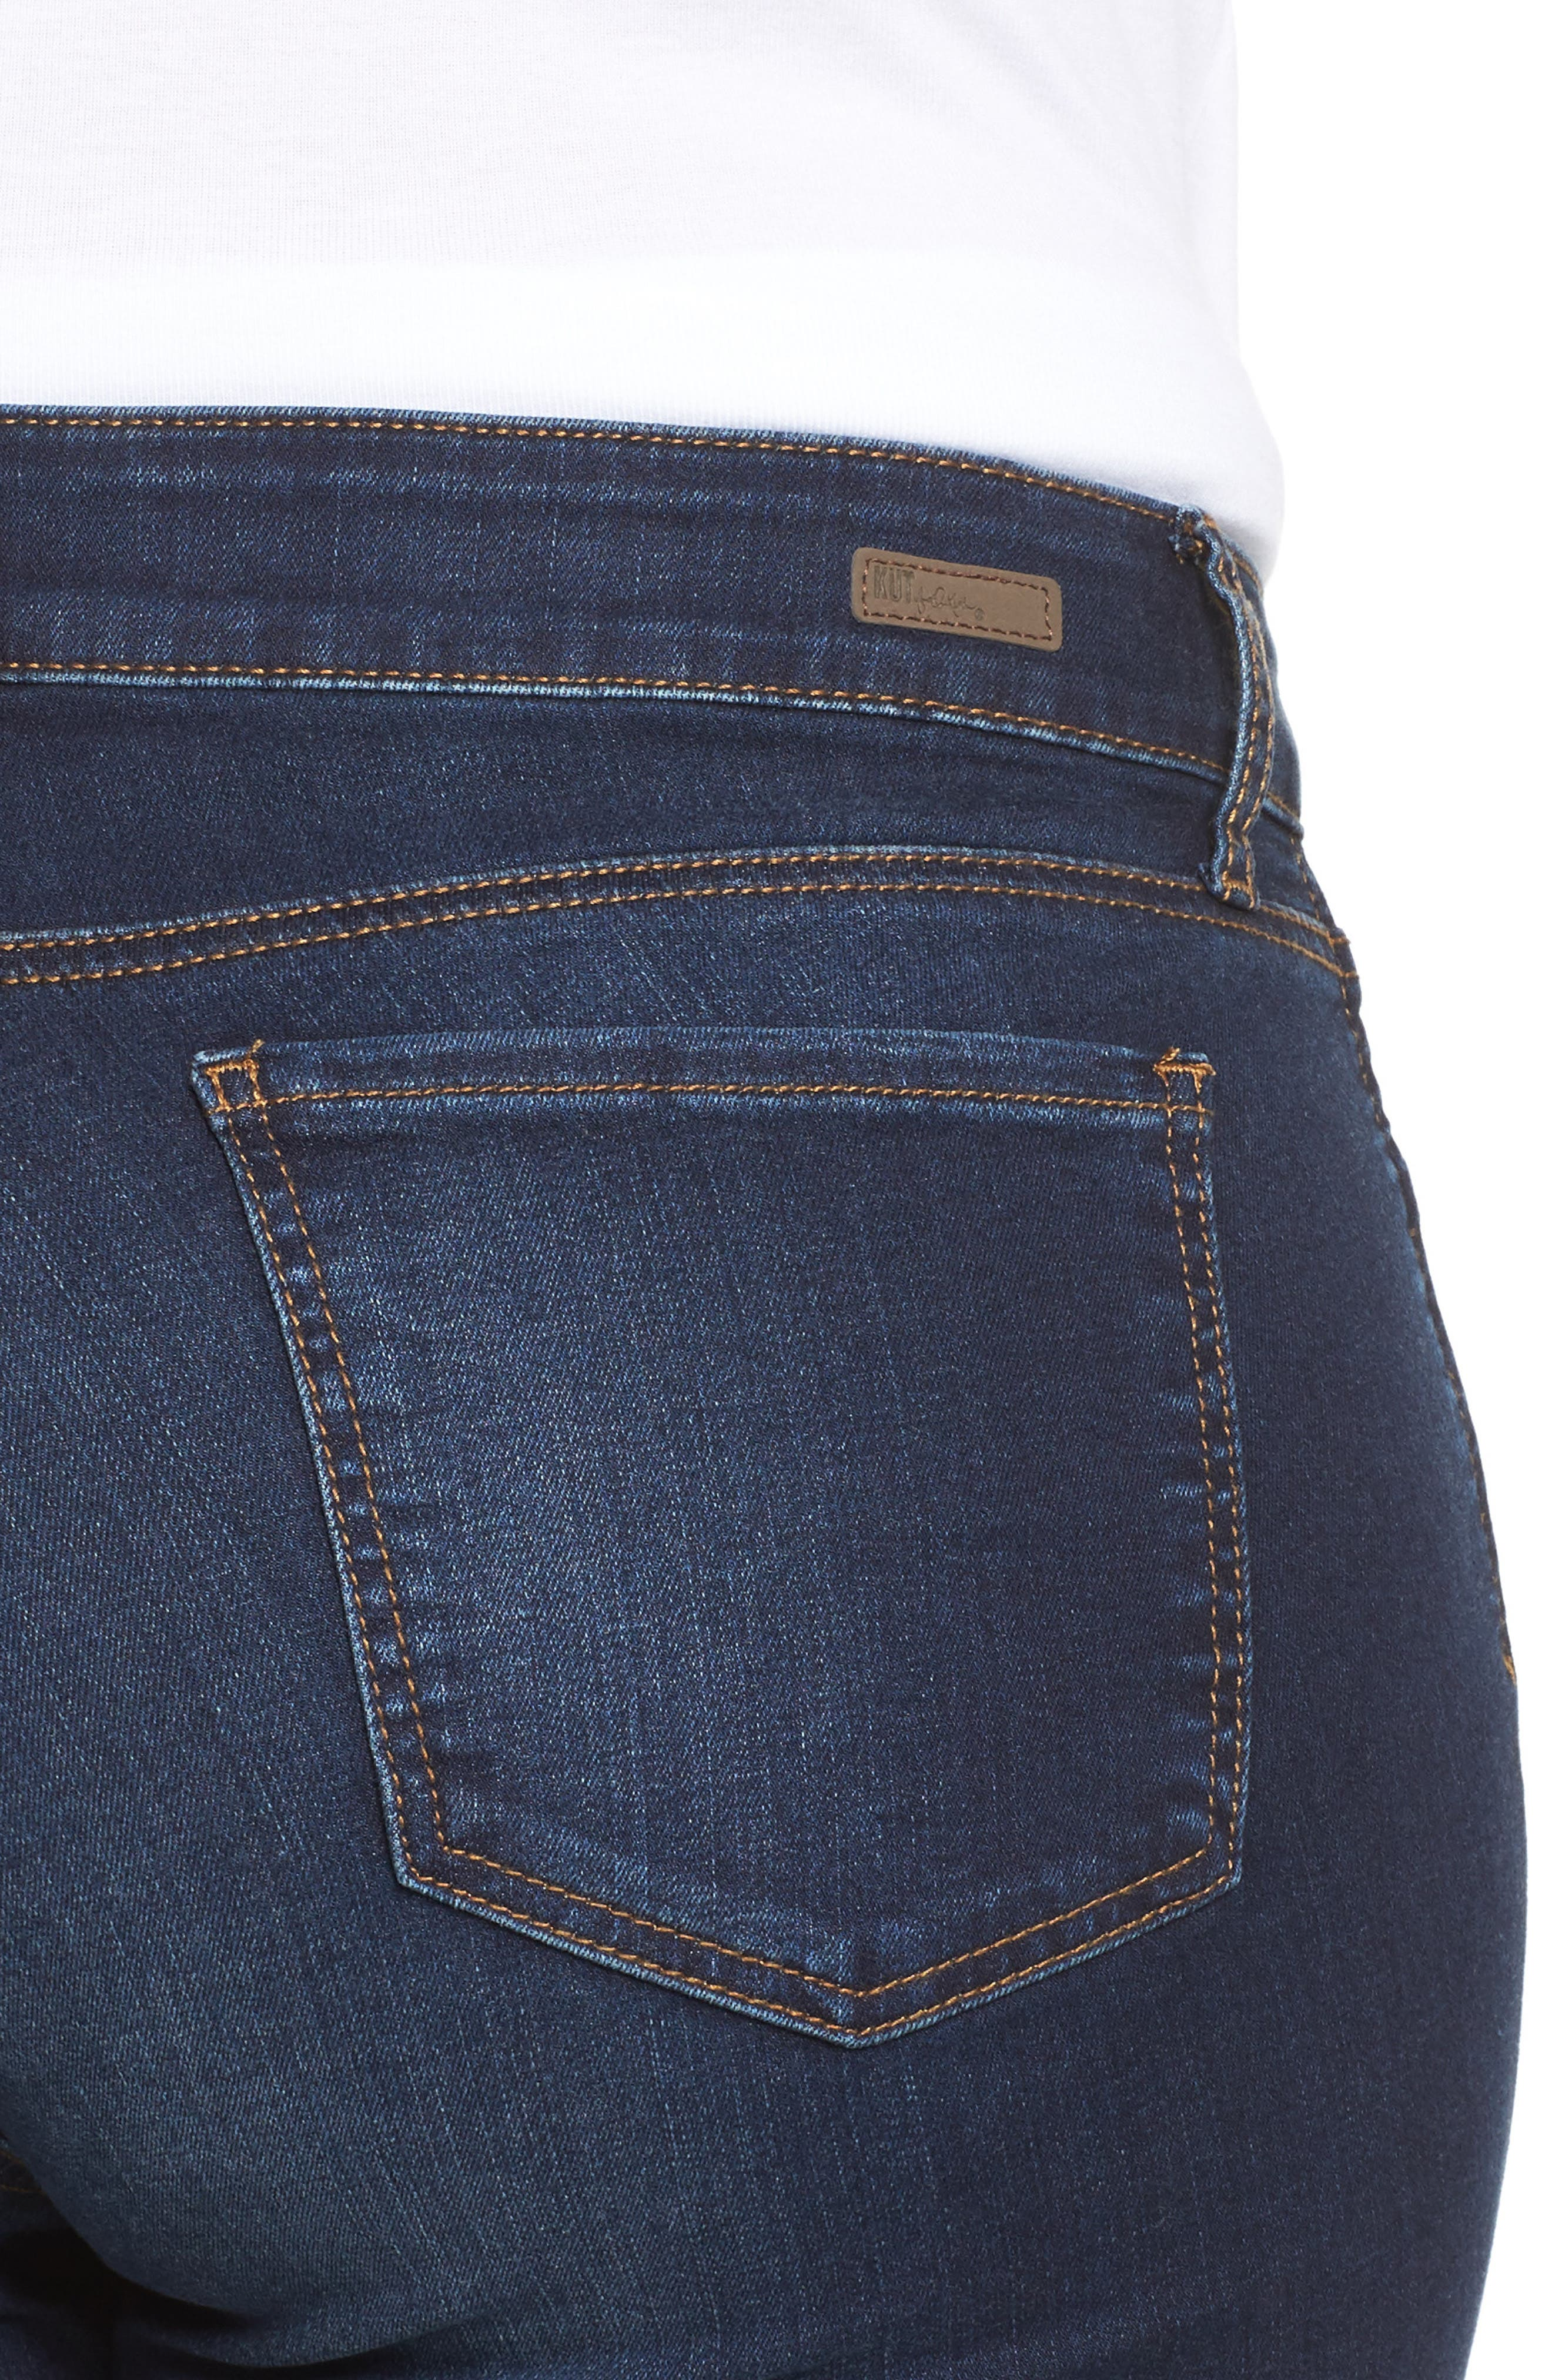 Alternate Image 4  - KUT from the Kloth Natalie High Waist Bootcut Jeans (Closeness) (Plus Size)